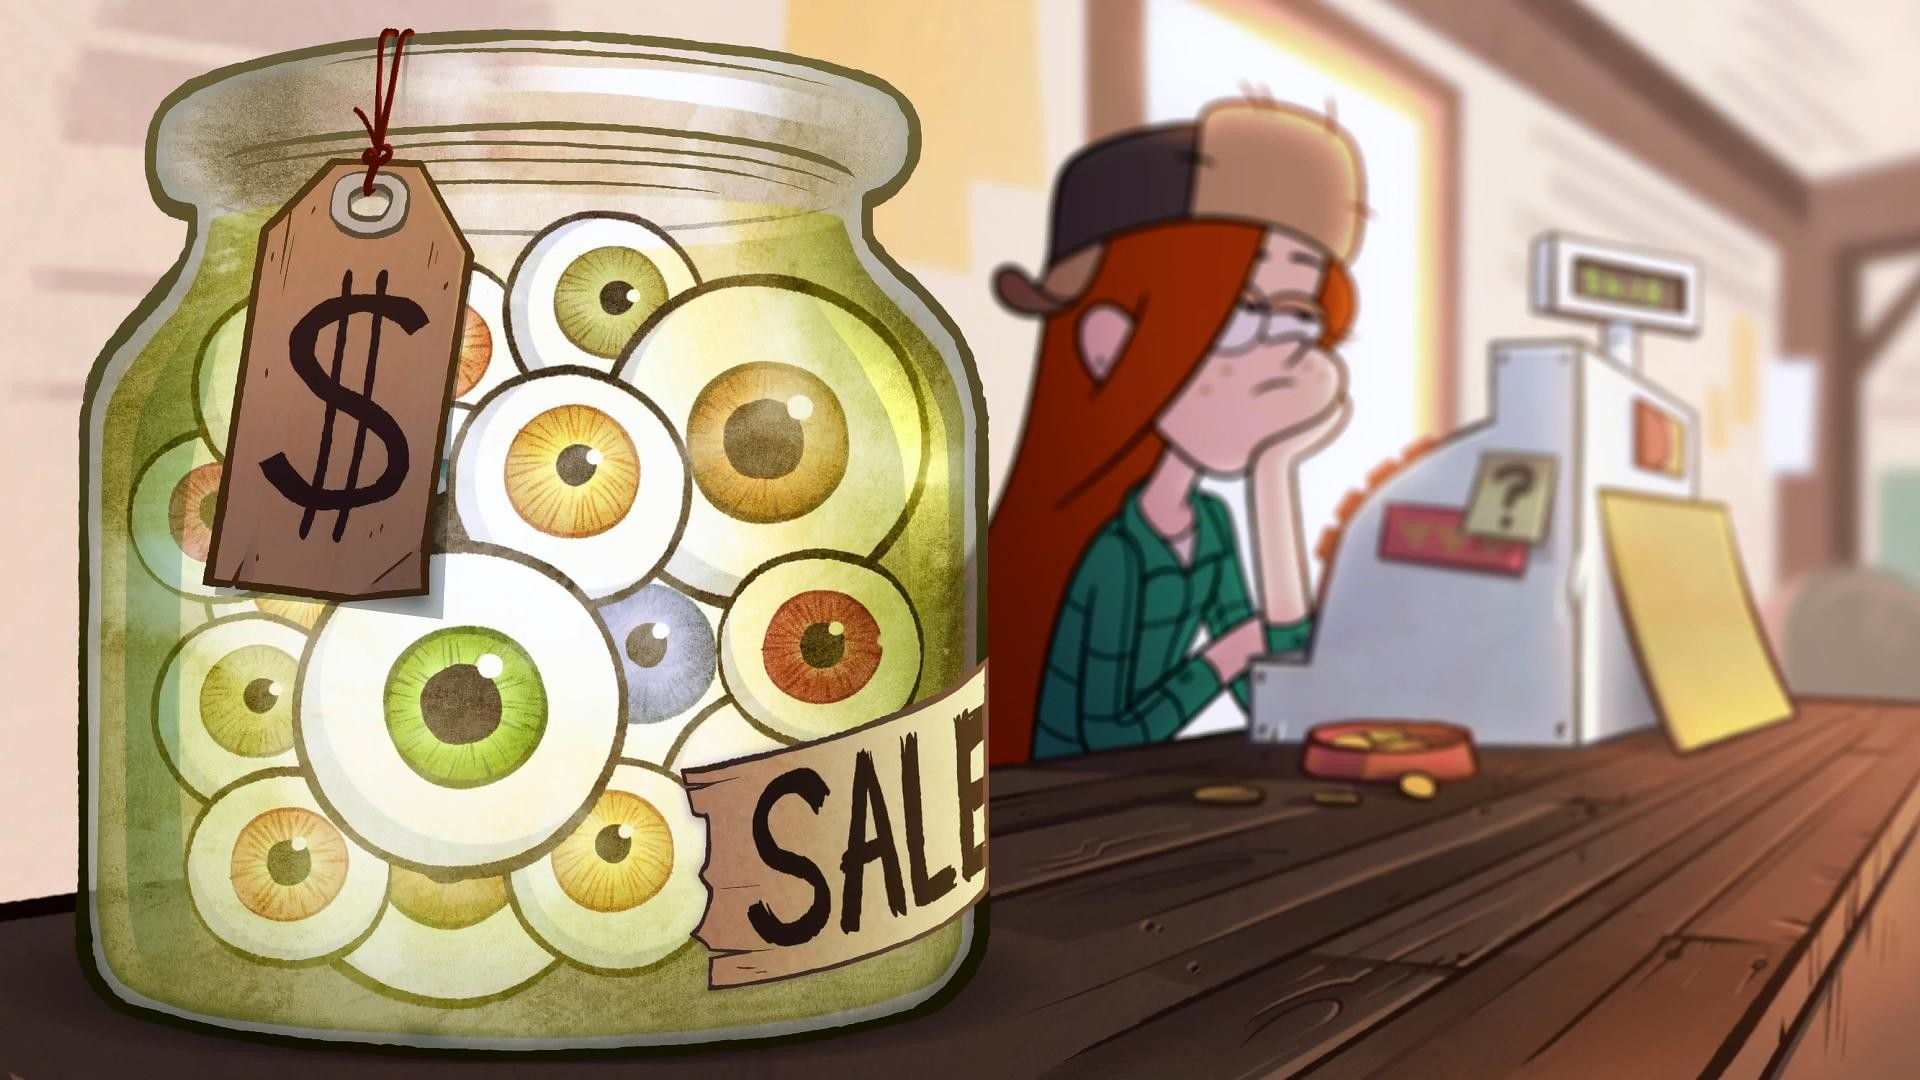 gravity falls wallpaper download free cool wallpapers for